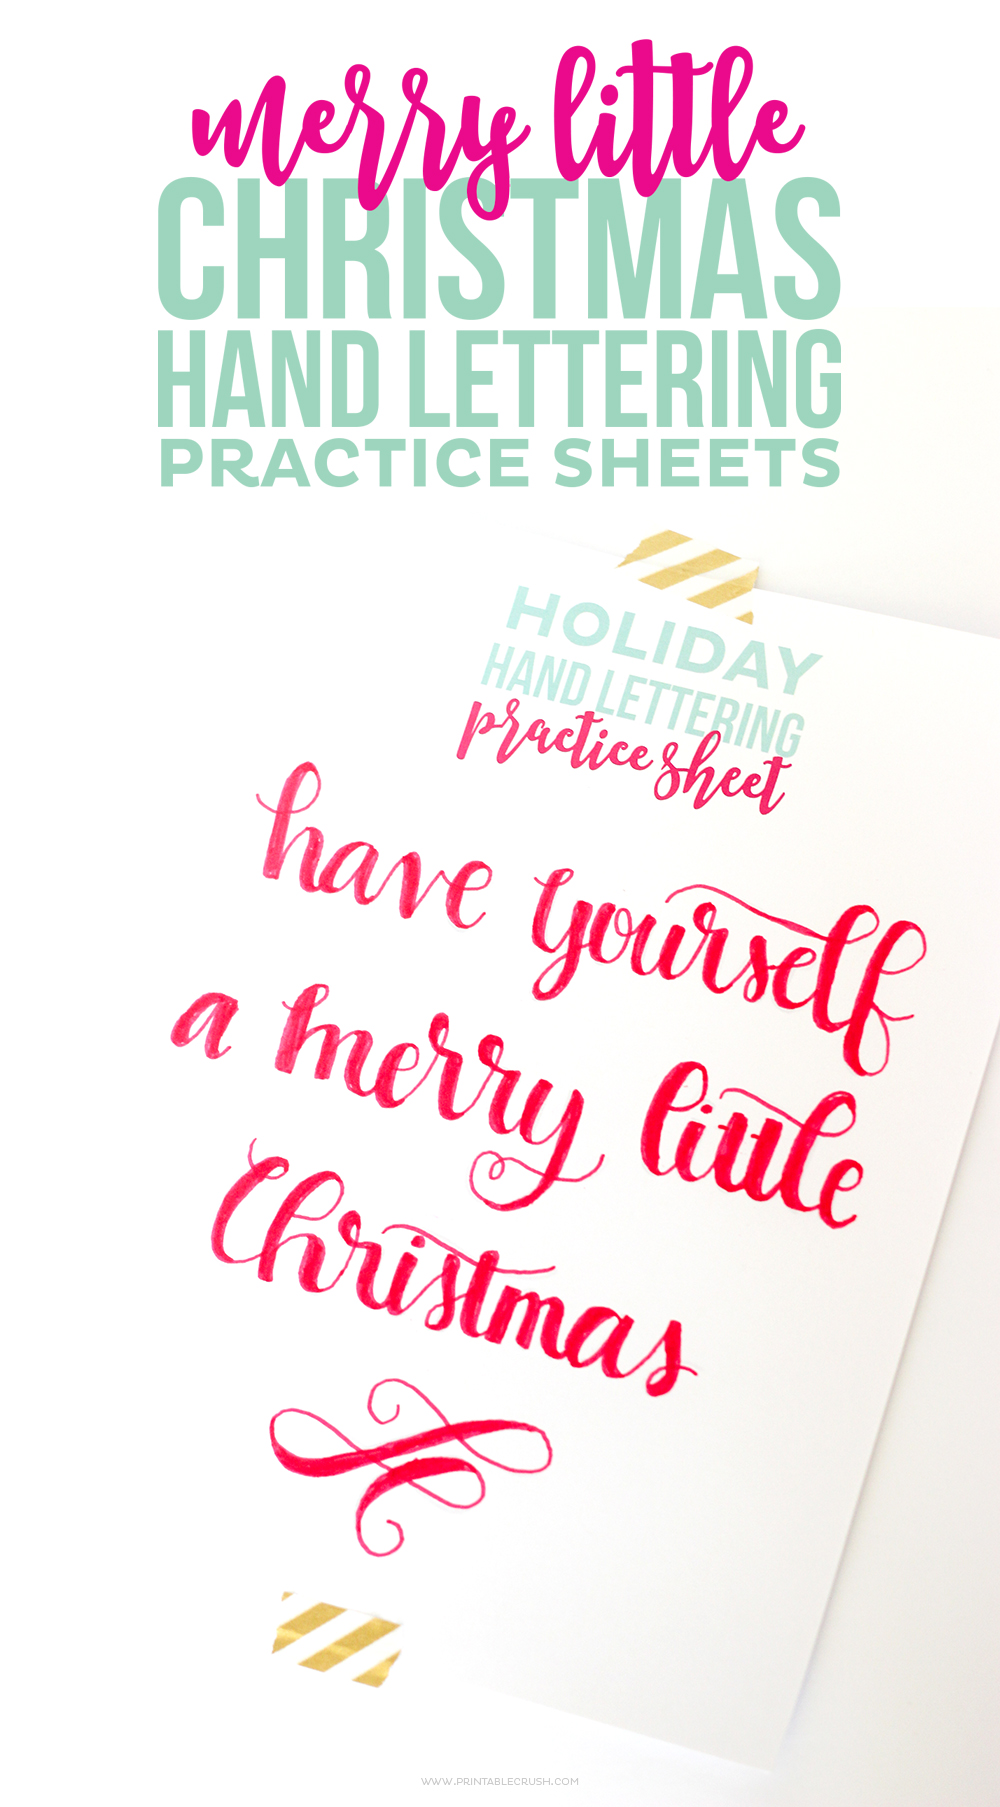 photo regarding Calligraphy Practice Sheets Printable known as Cost-free Printable Xmas Hand Lettering Train Sheets